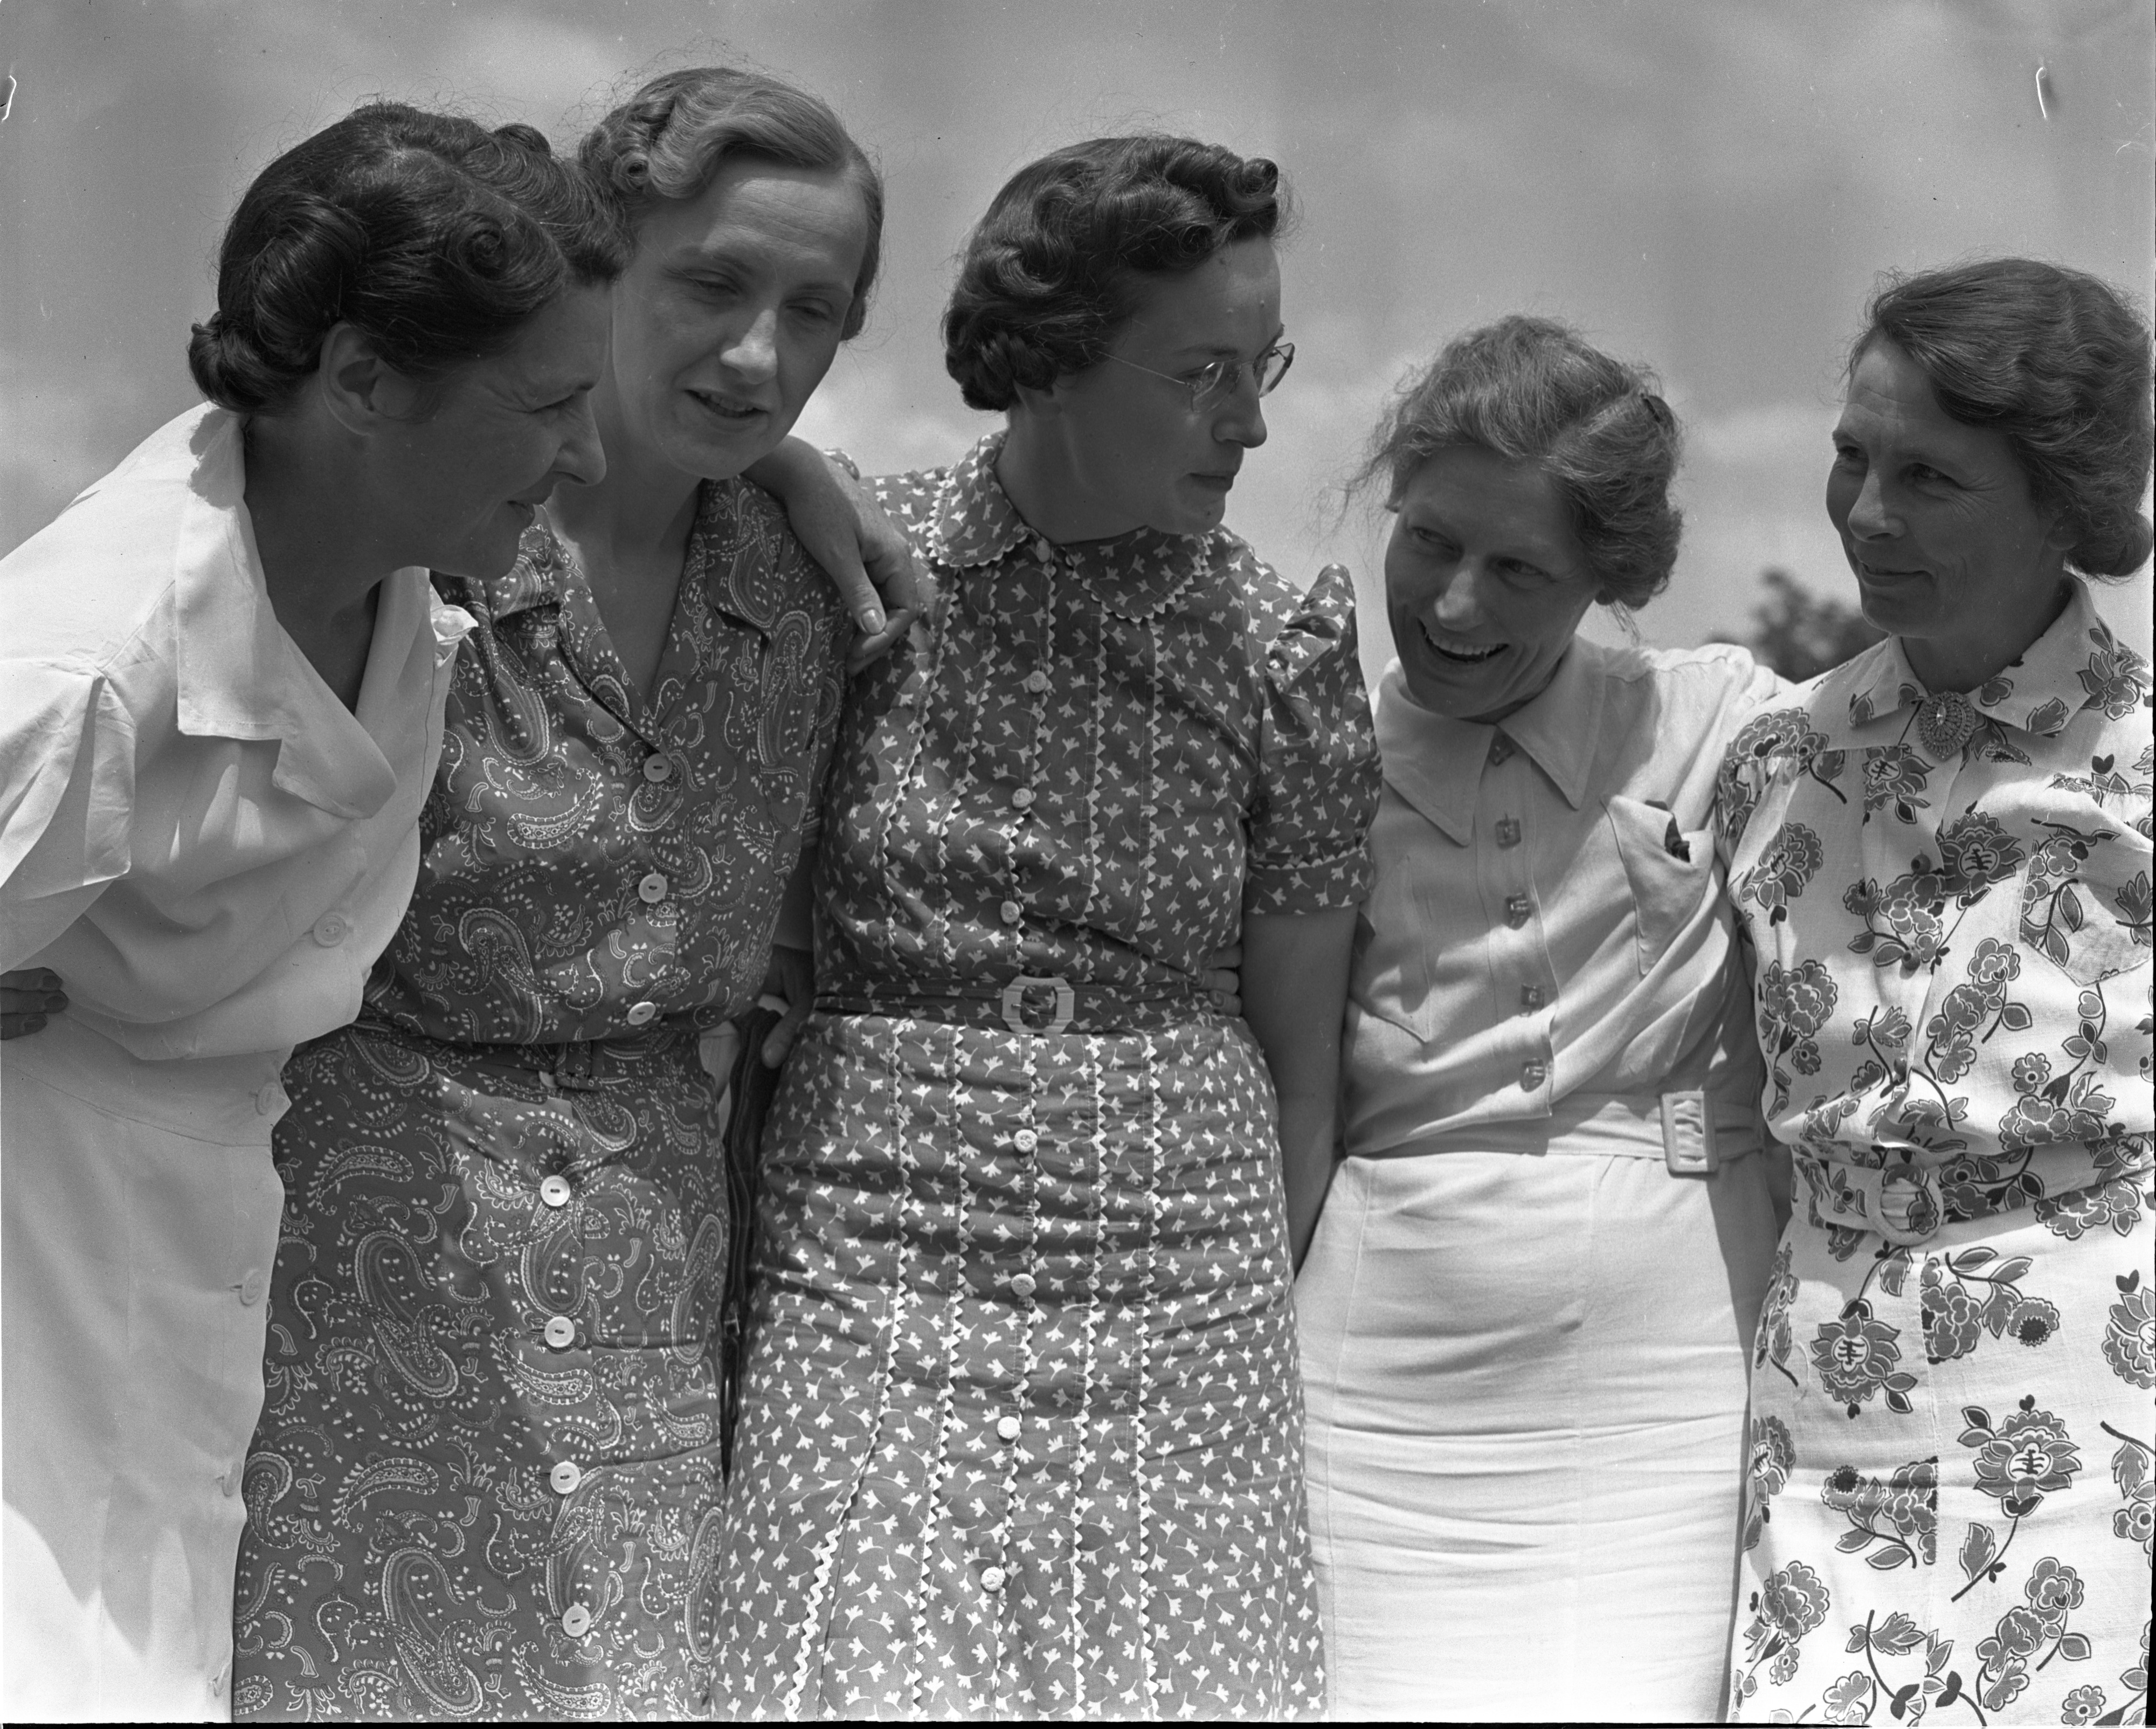 Contestants In The Women's City Golf Tournament Qualifying Rounds At Barton Hills, July 1939 image